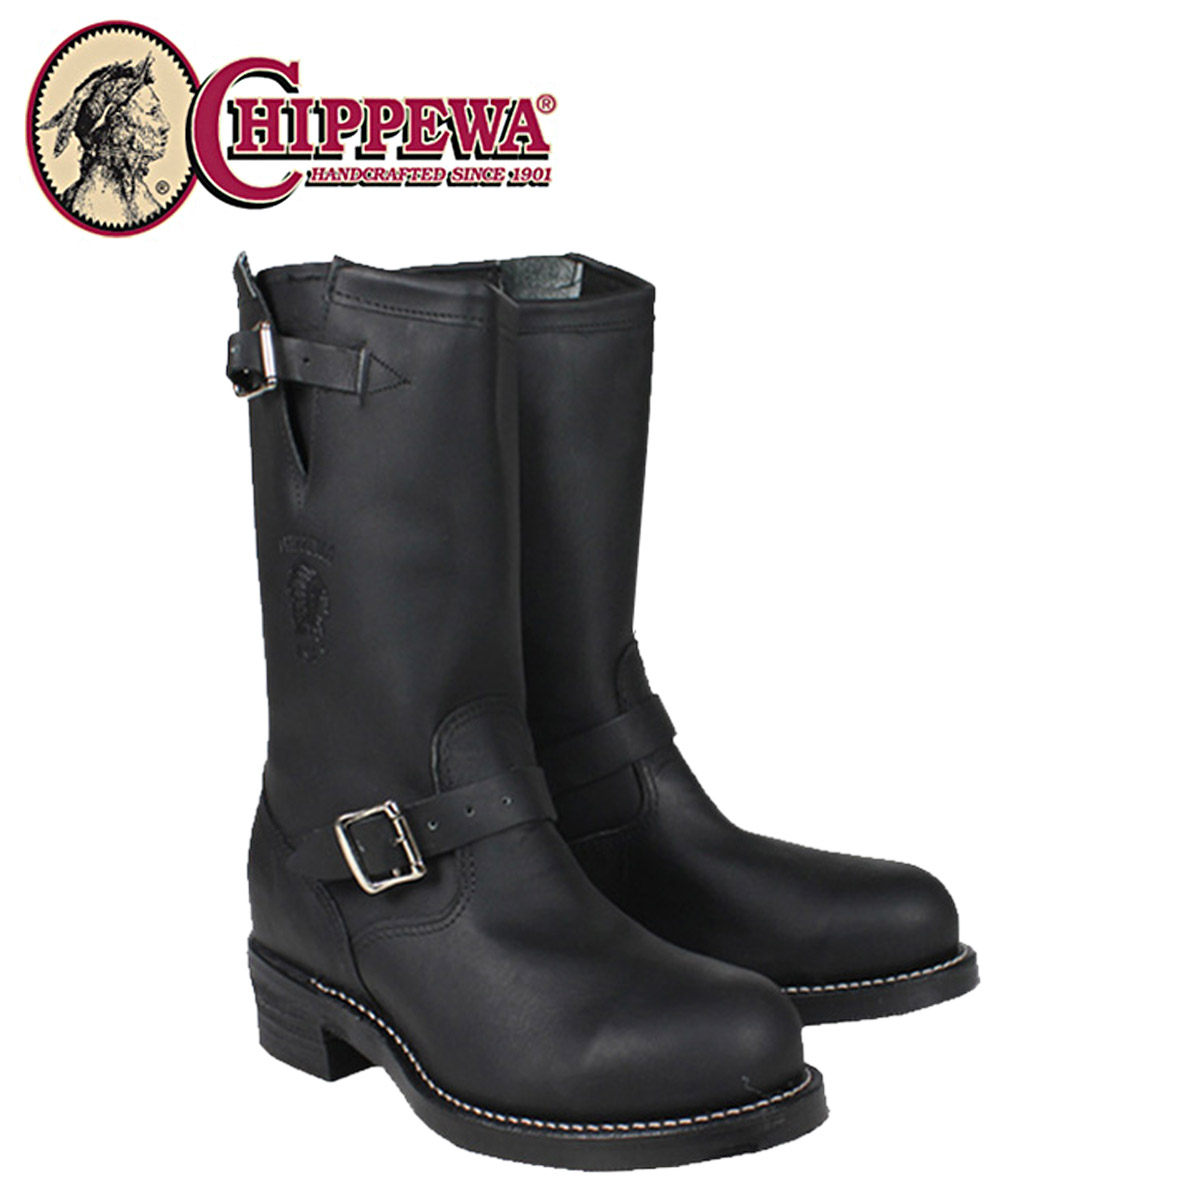 Chippewa CHIPPEWA Engineer Boots 27863 SAFETY TOE D wise E wise leather men's